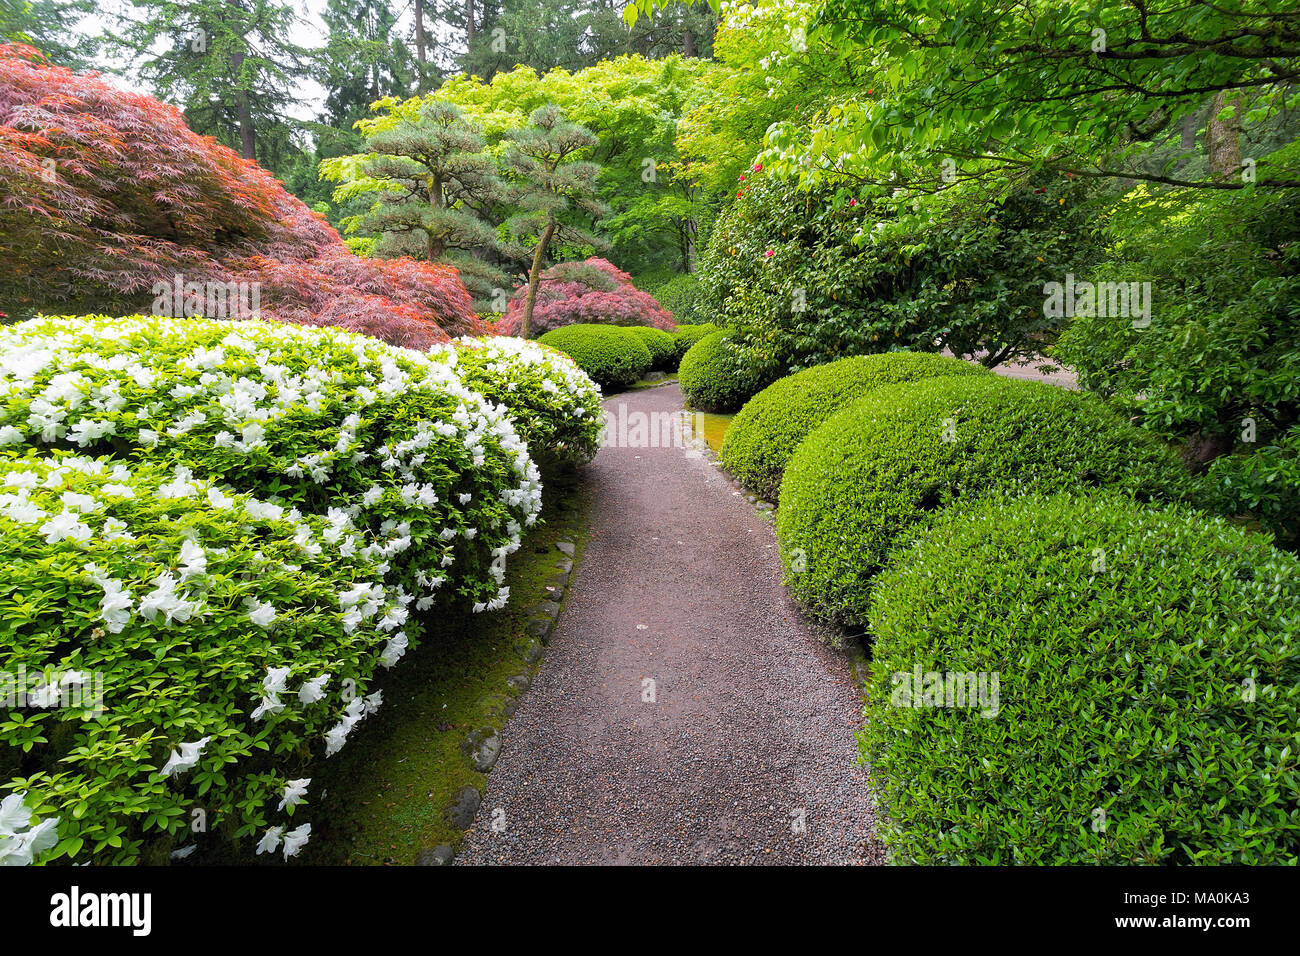 Delicieux Strolling Garden Path With Trees And Shrubs In Japanese Garden Suring  Spring Season